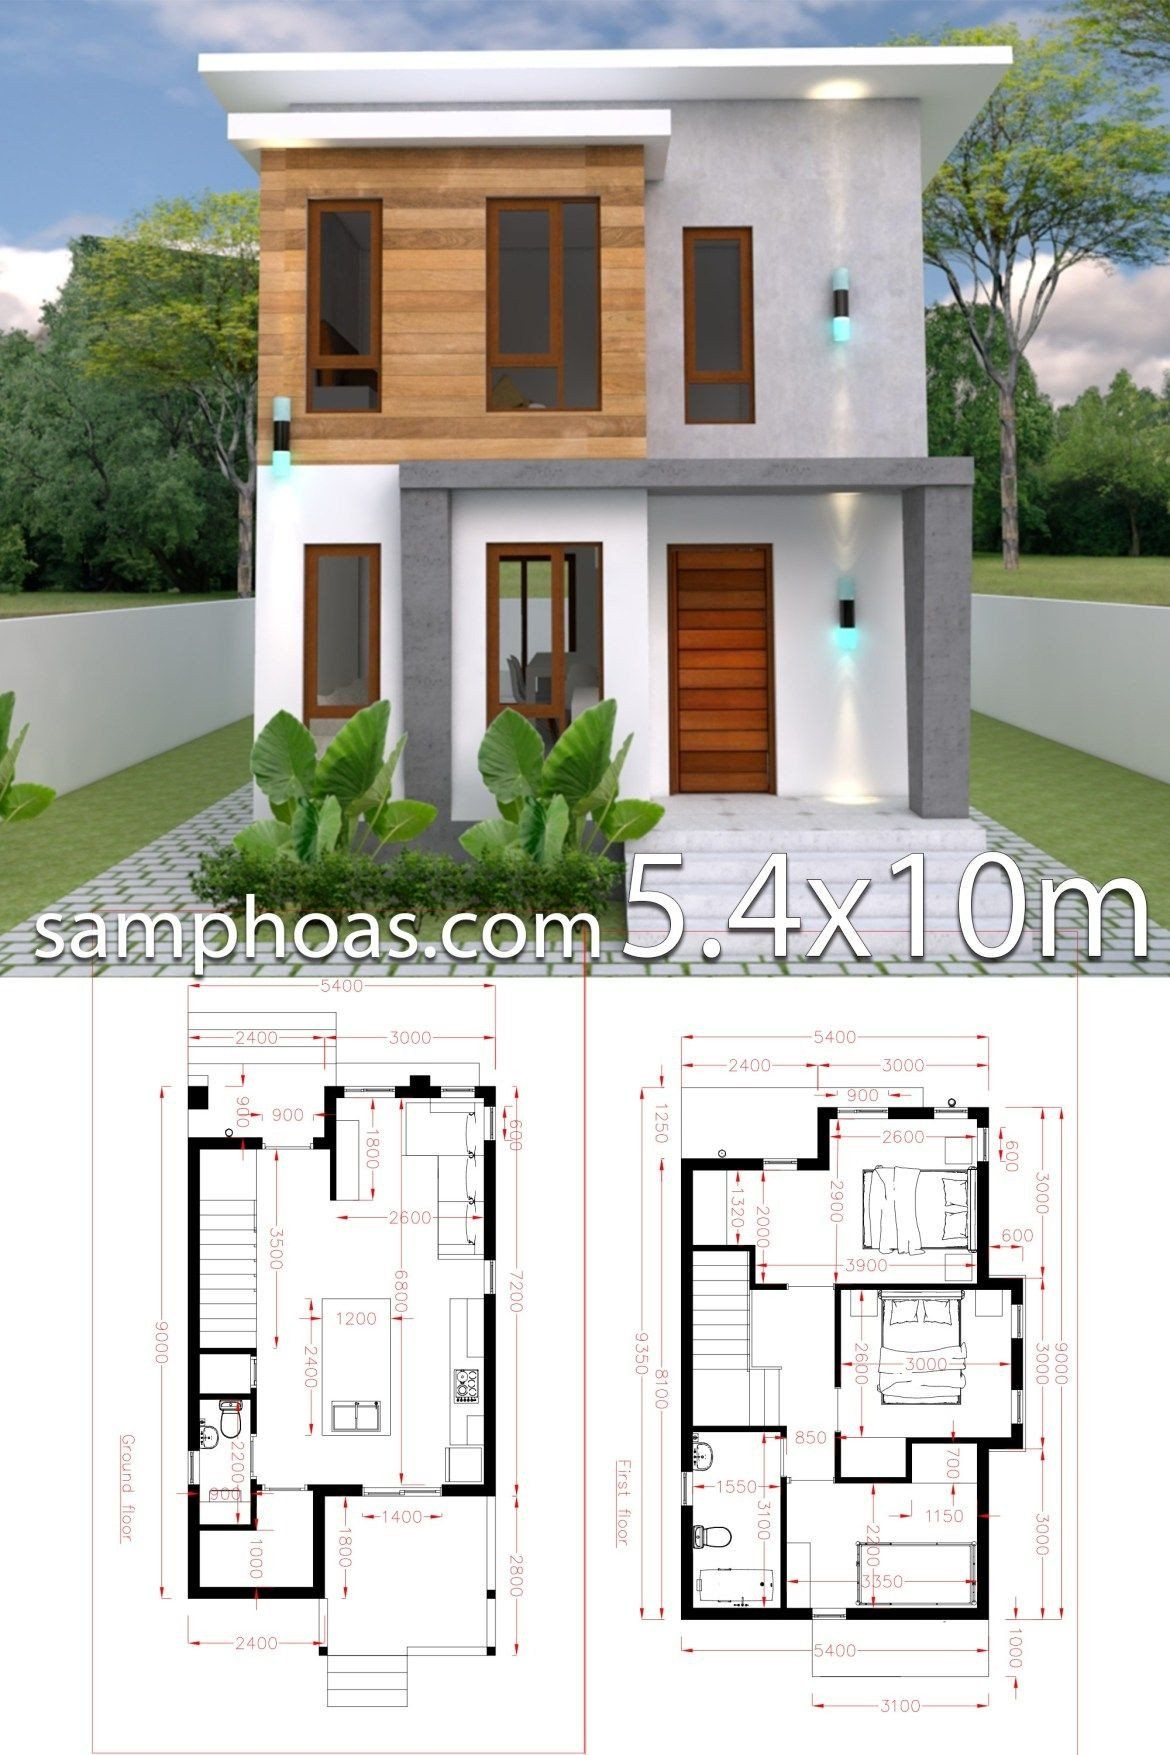 Simple Modern House Plans Small Home Design Plan 5 4x10m With 3 Bedroom Small House Design Plans Simple House Design Model House Plan